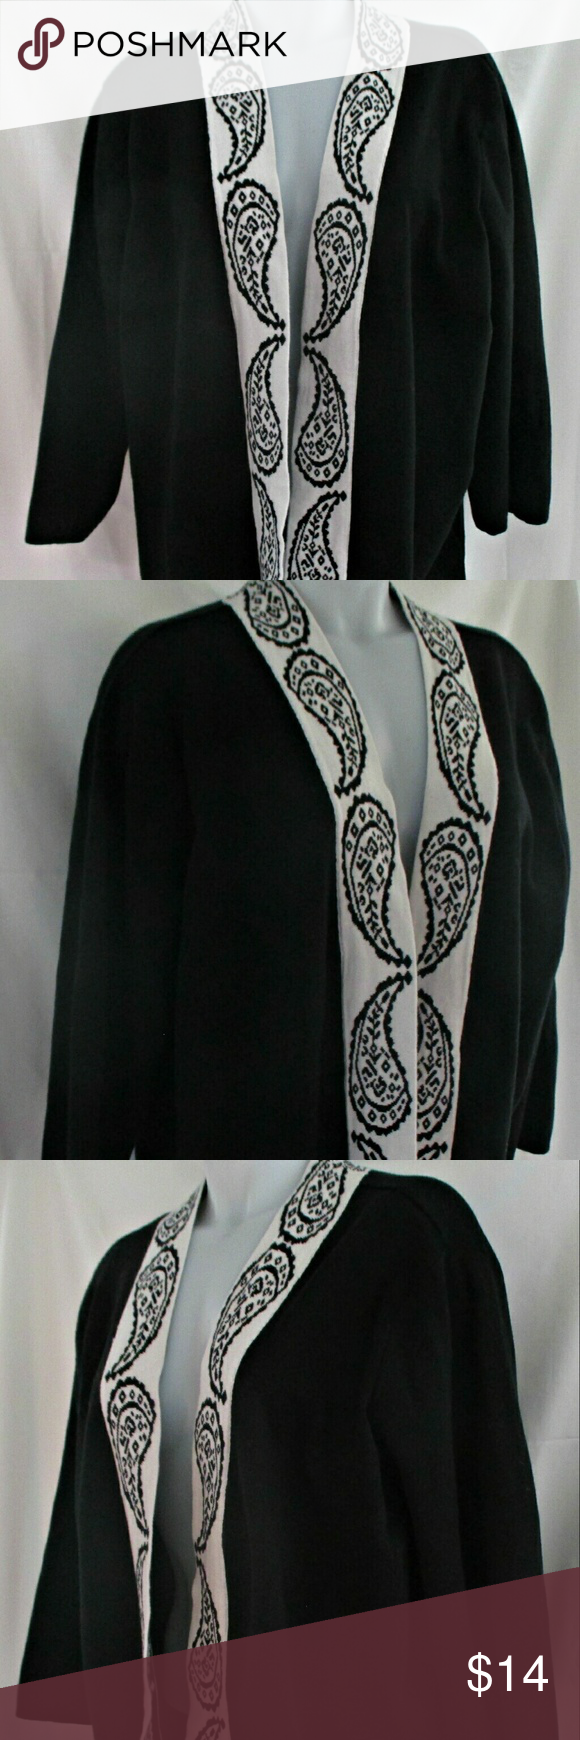 """Black White Paisley Open Front  Sweater 2X Here's a nice looking black, with a white paisley pattern trim, open front sweater that is in good condition with only gentle wear. 3/4 sleeves. Stated size is 2X. Measurements are 19"""" shoulders, 18"""" sleeve, 28"""" breast, 27"""" waterfall, 27"""" length. All measurements are taken with the garment laying flat. Designer's Original Sweaters Cardigans"""